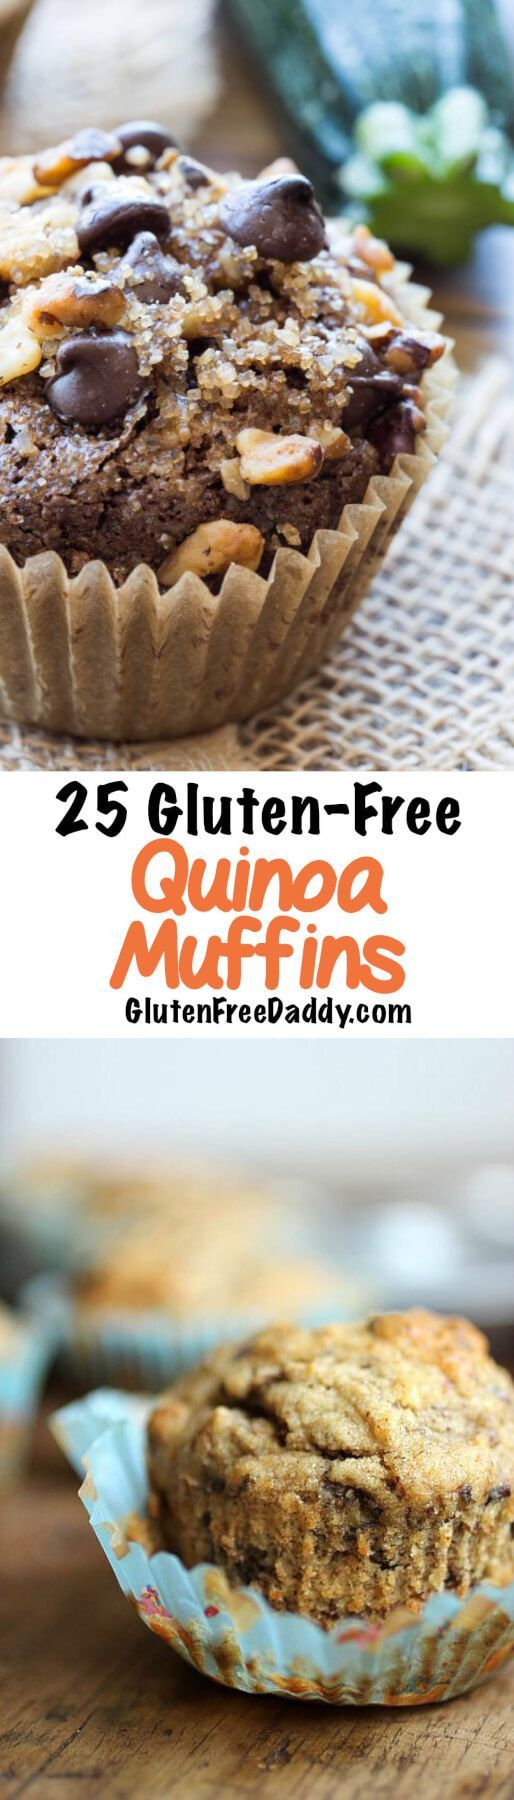 I was pleasantly surprised when I found 25 gluten-free quinoa muffins recipes. Quinoa is a delicious protein that can be very filling.